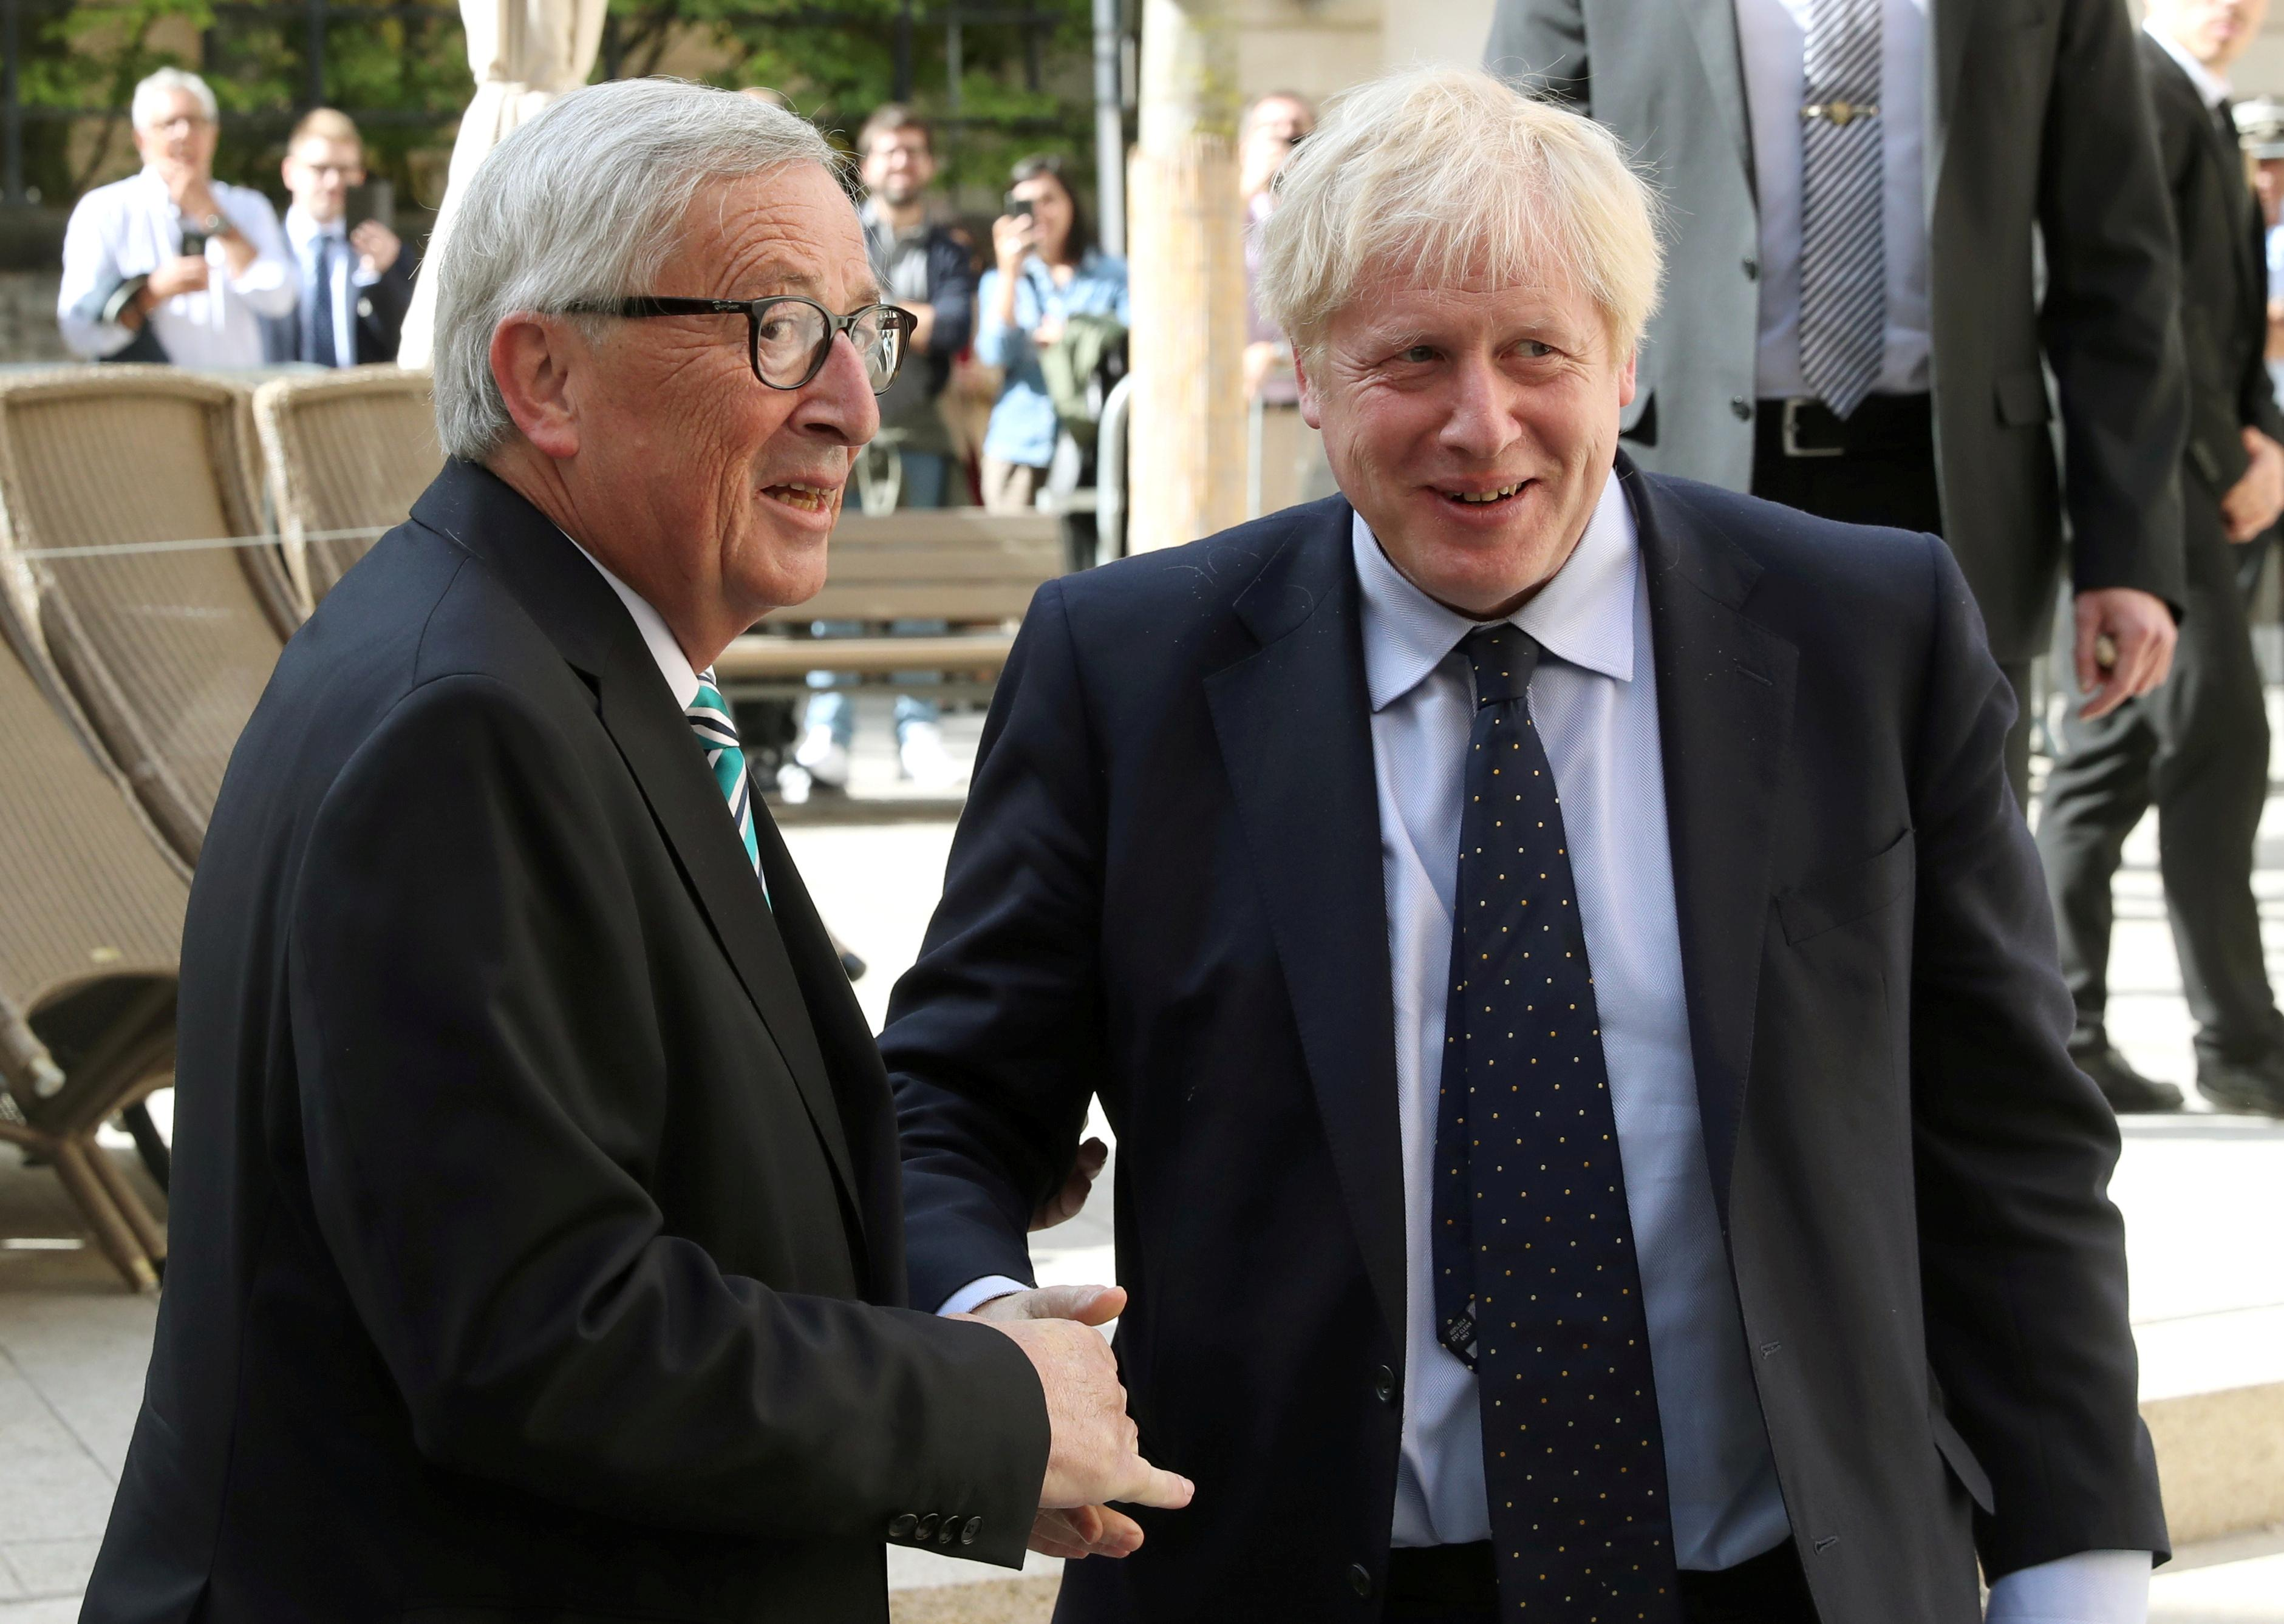 Johnson buffeted in Luxembourg, says Brexit deal emerging